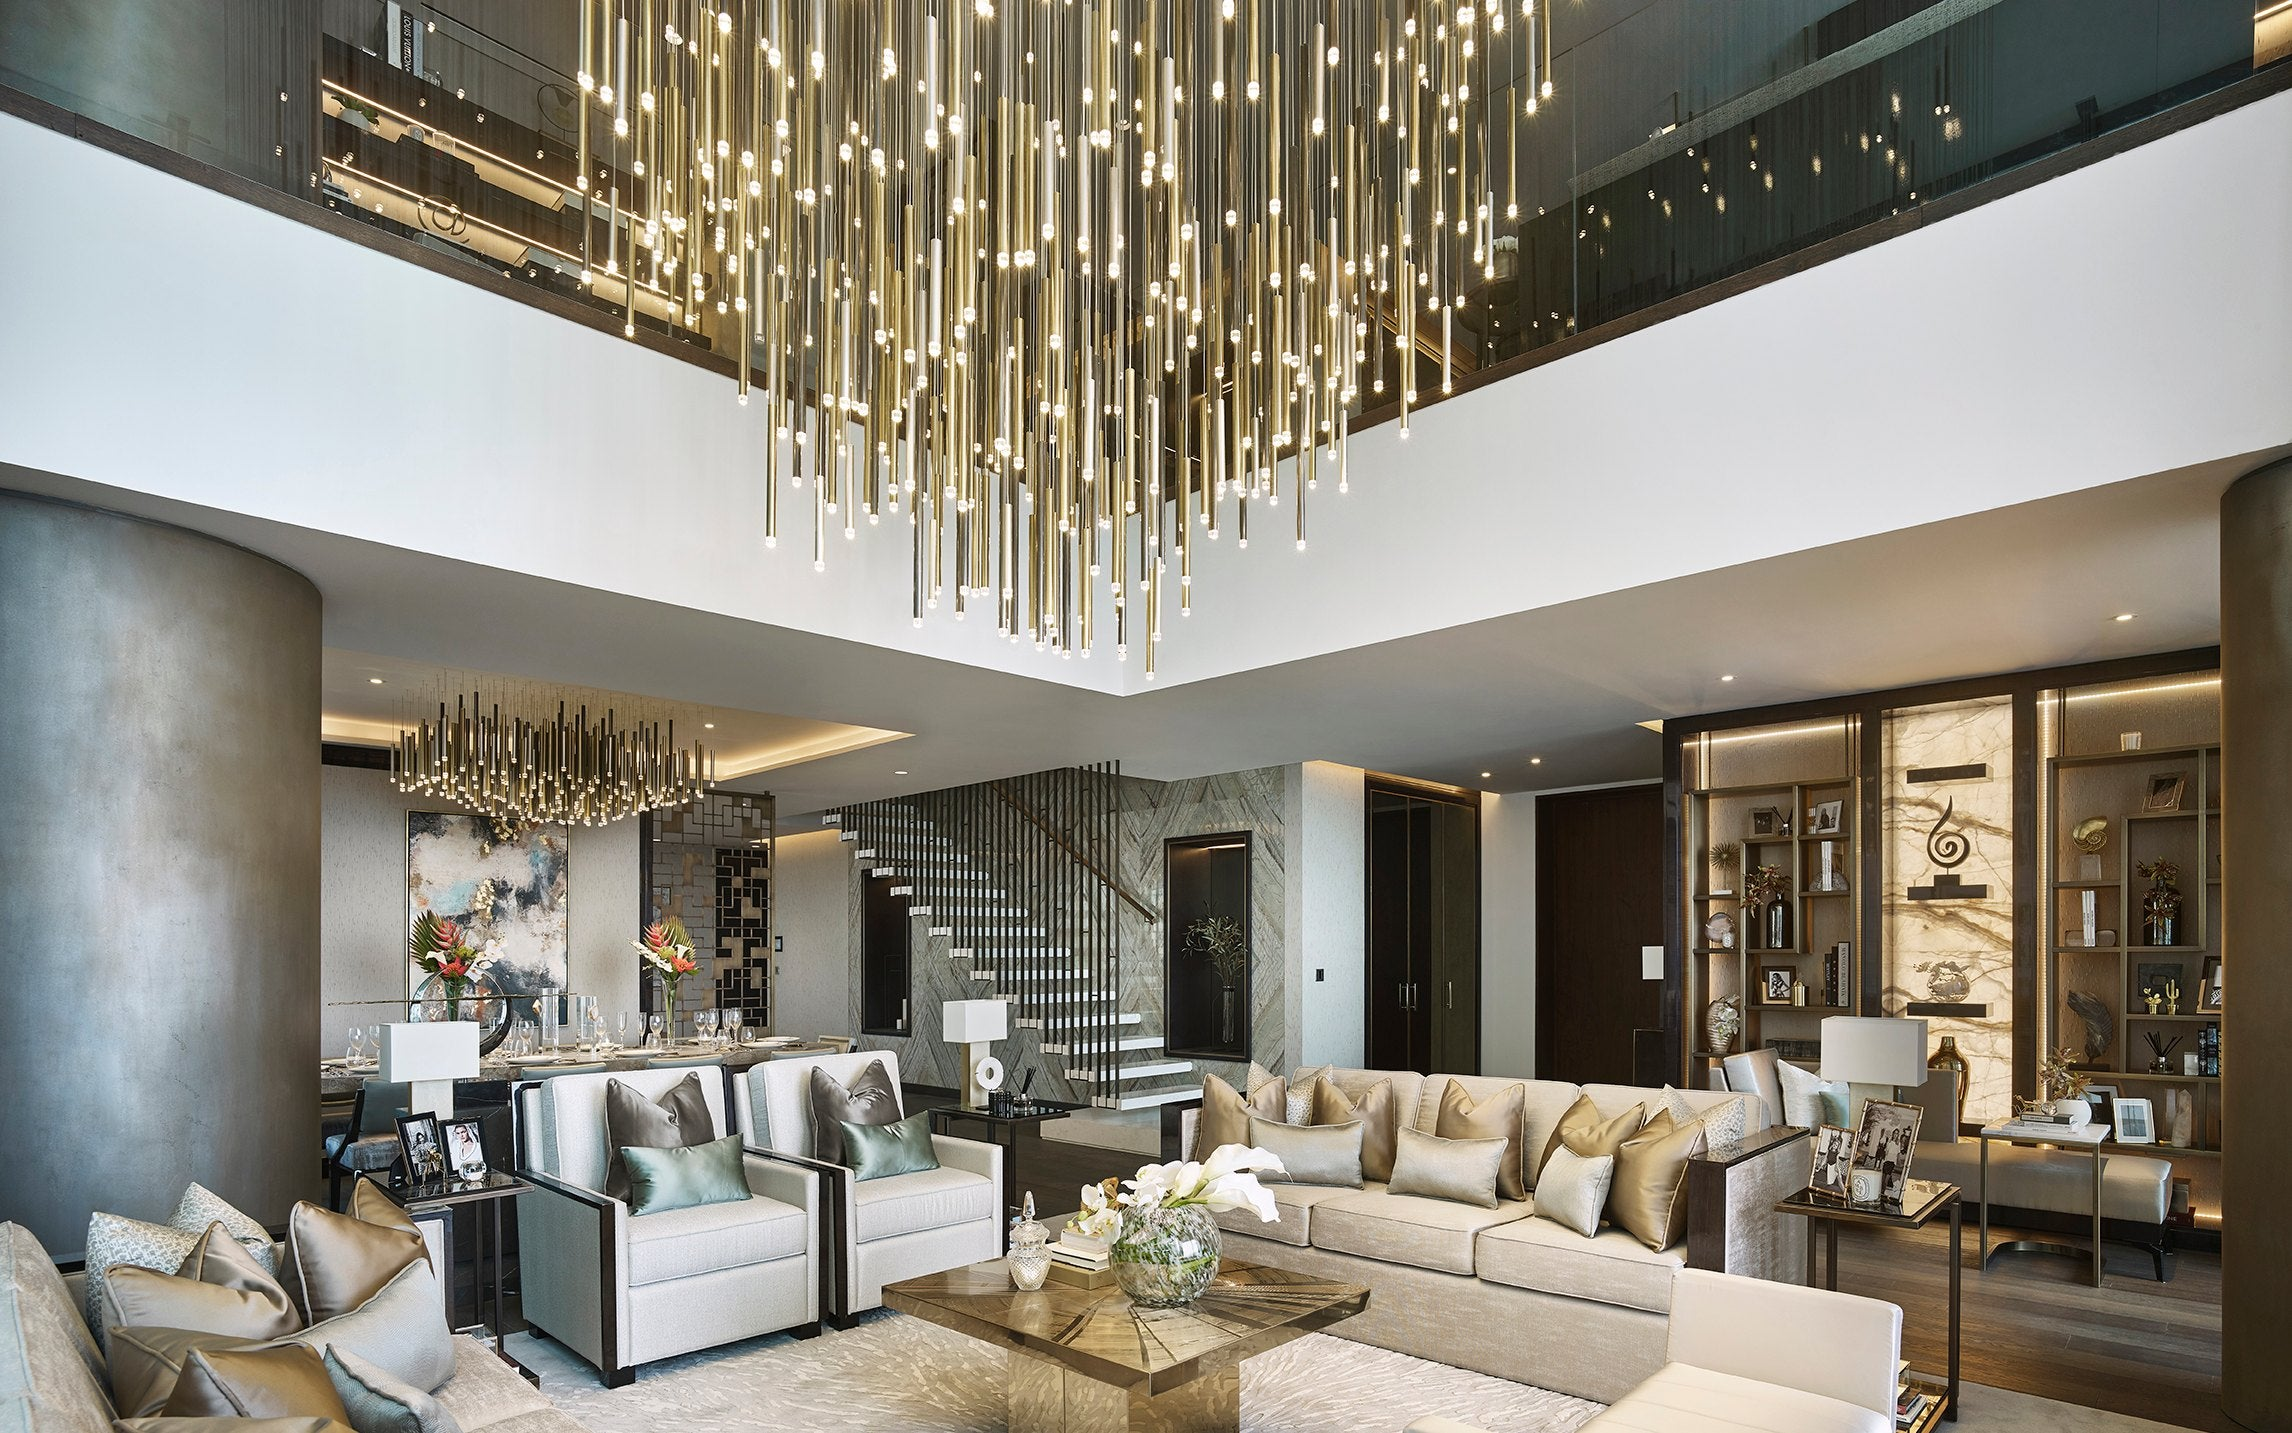 Statement Lighting - 7 Ways To Make a Statement In Your Living Room - LuxDeco.com Style Guide